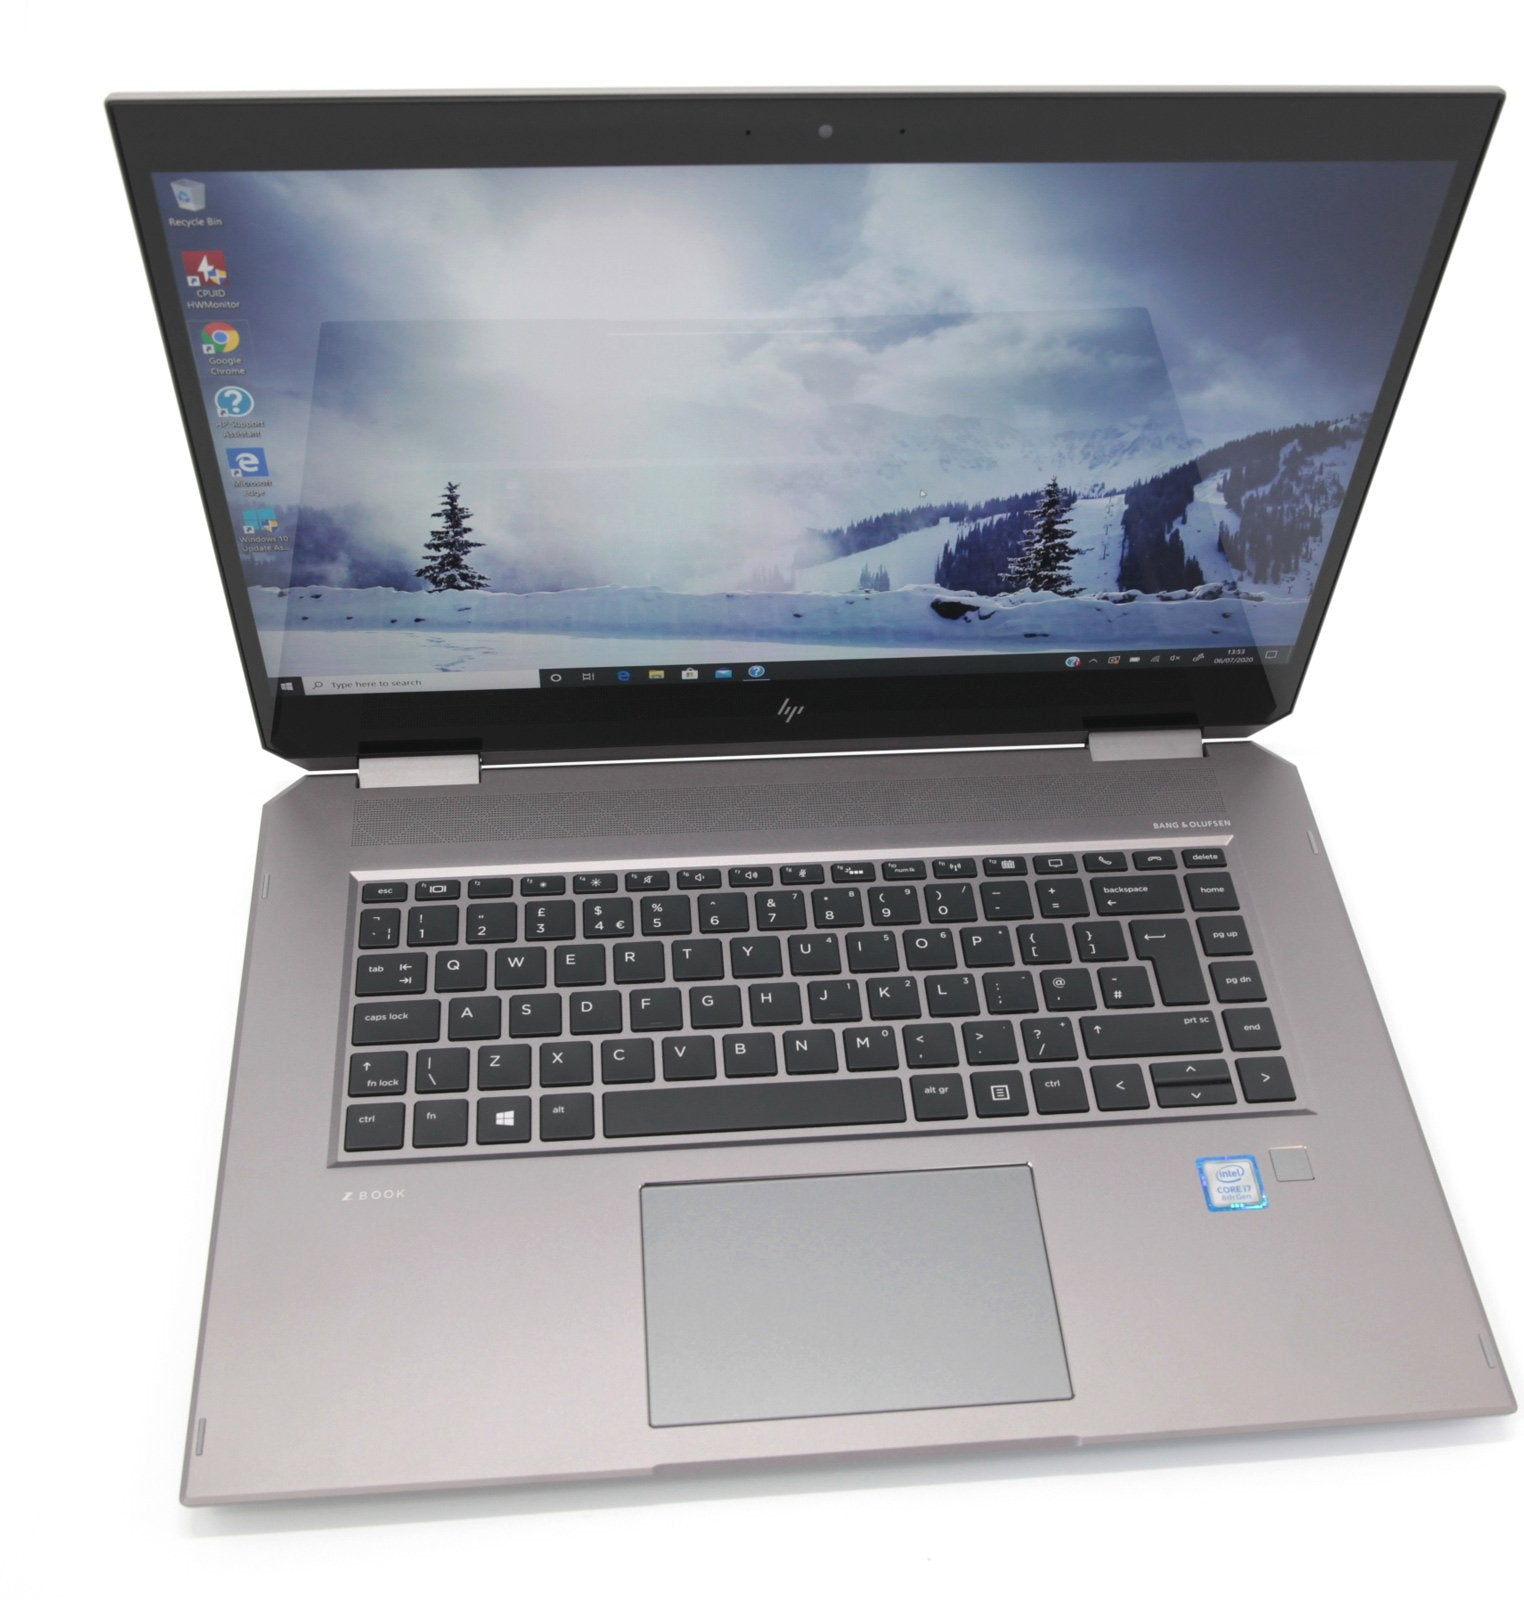 HP ZBook 15 G5 Studio Touch Screen Laptop: Core i7, 16GB RAM, 256GB, Warranty - CruiseTech